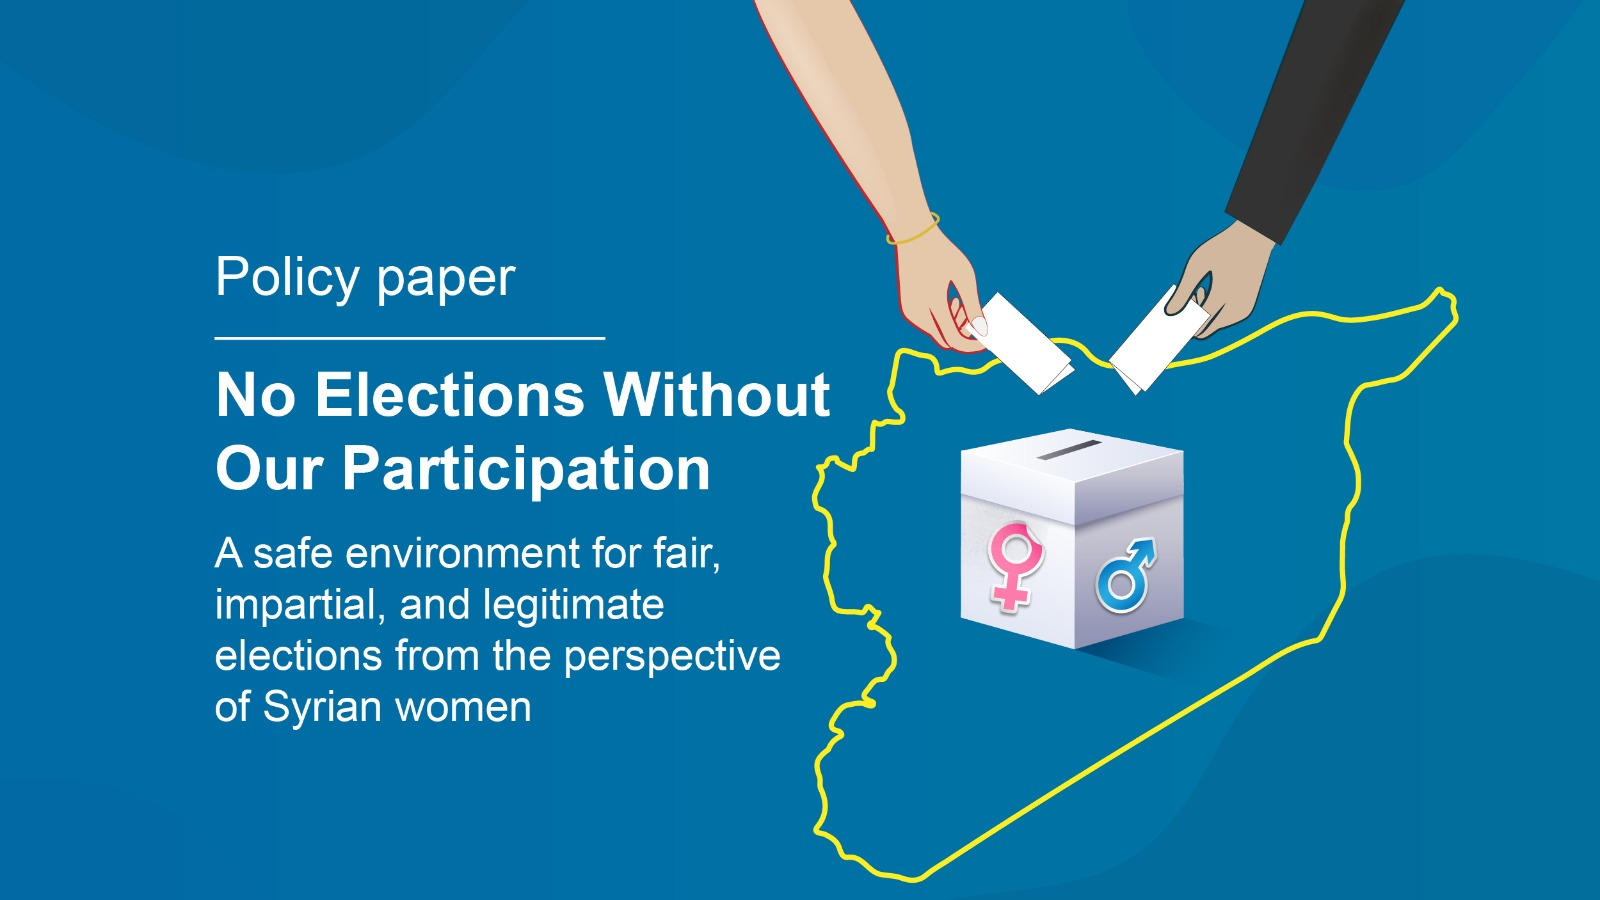 Policy Paper- No Elections Without Our Participation: A safe environment for fair, impartial, and legitimate elections from the perspective of Syrian women